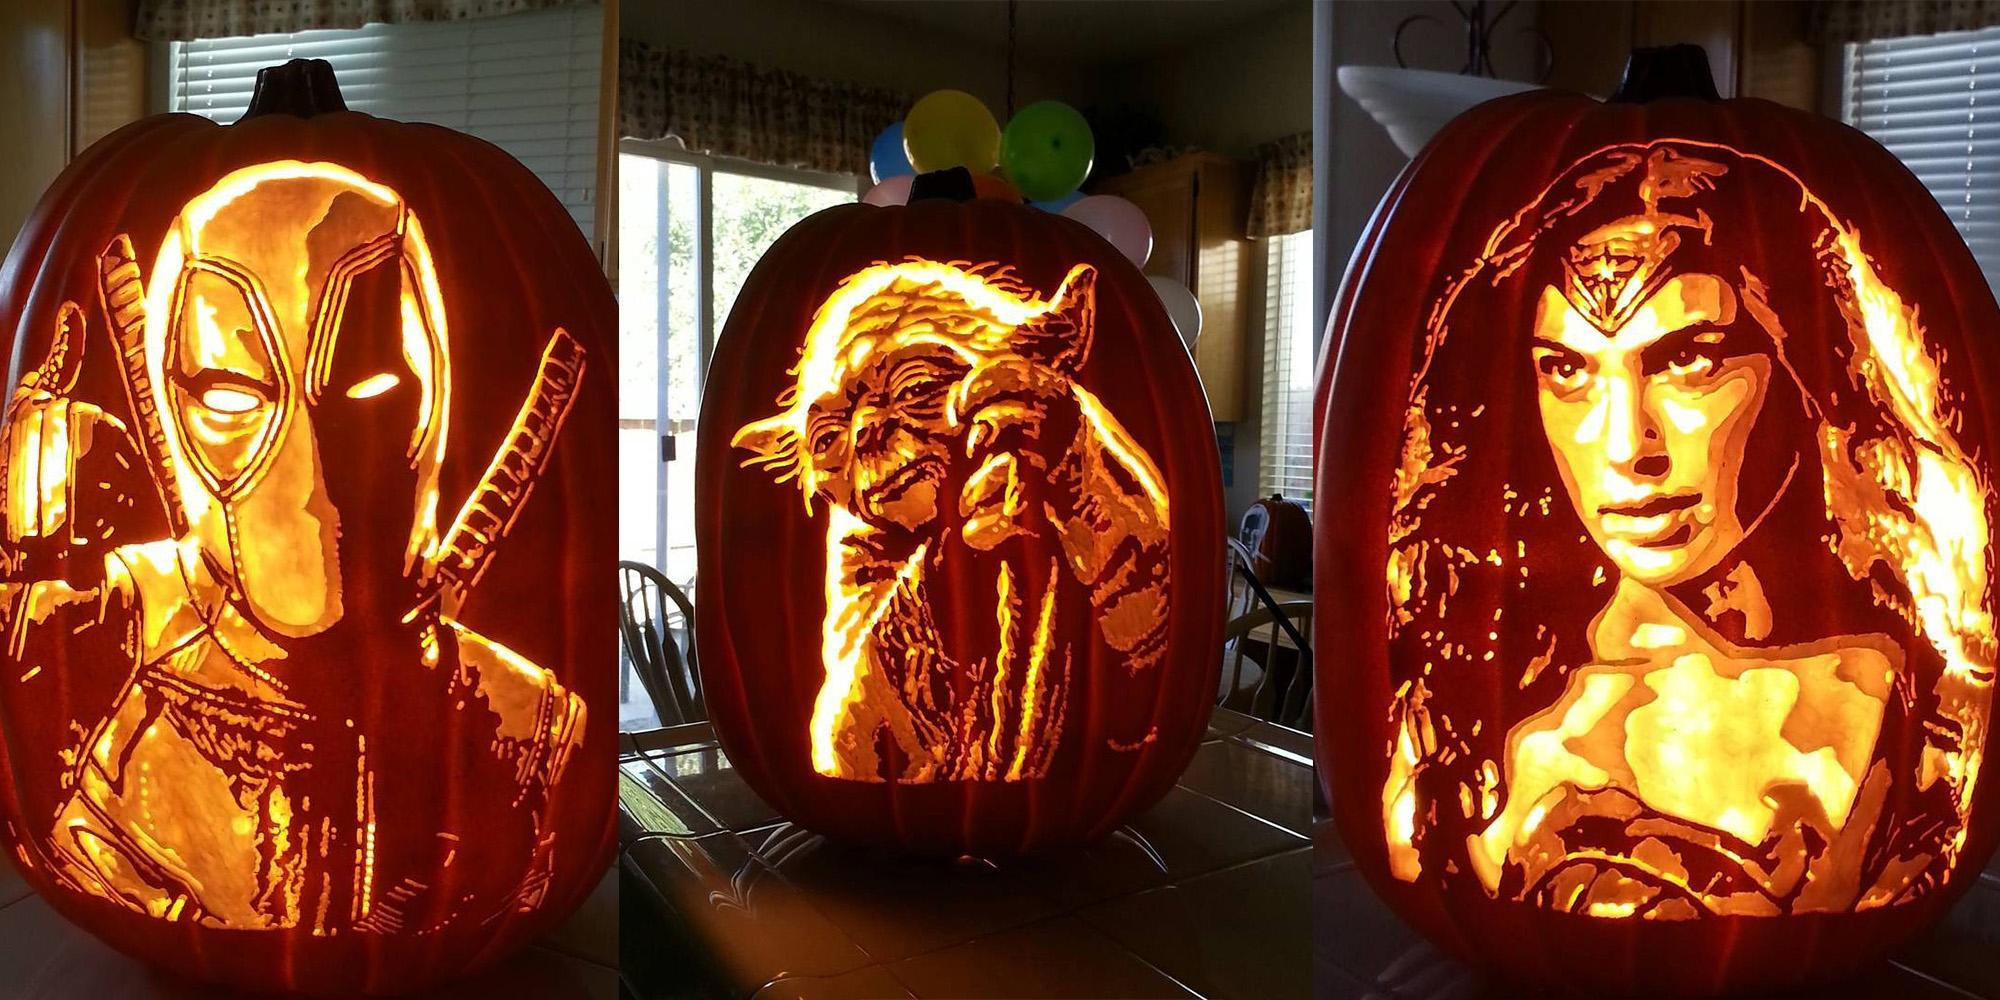 32 Of The Most Impressive Pumpkin Carvings You Ll See This Halloween Indy100